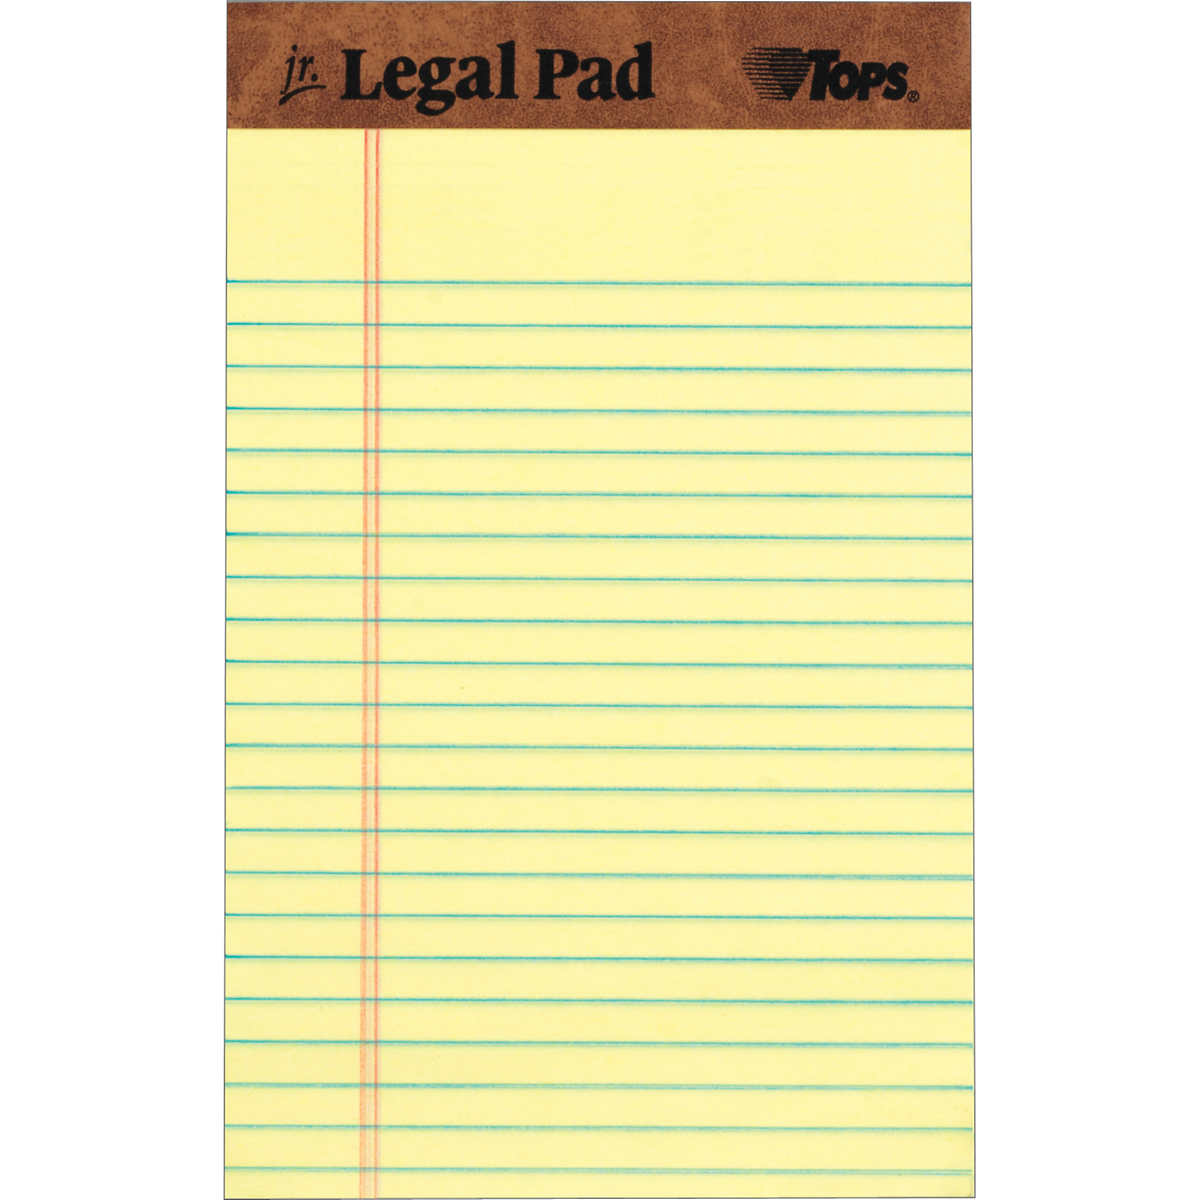 TOPS The Legal Pad Jr., 36 in. x 36 in., Canary, 36-Count